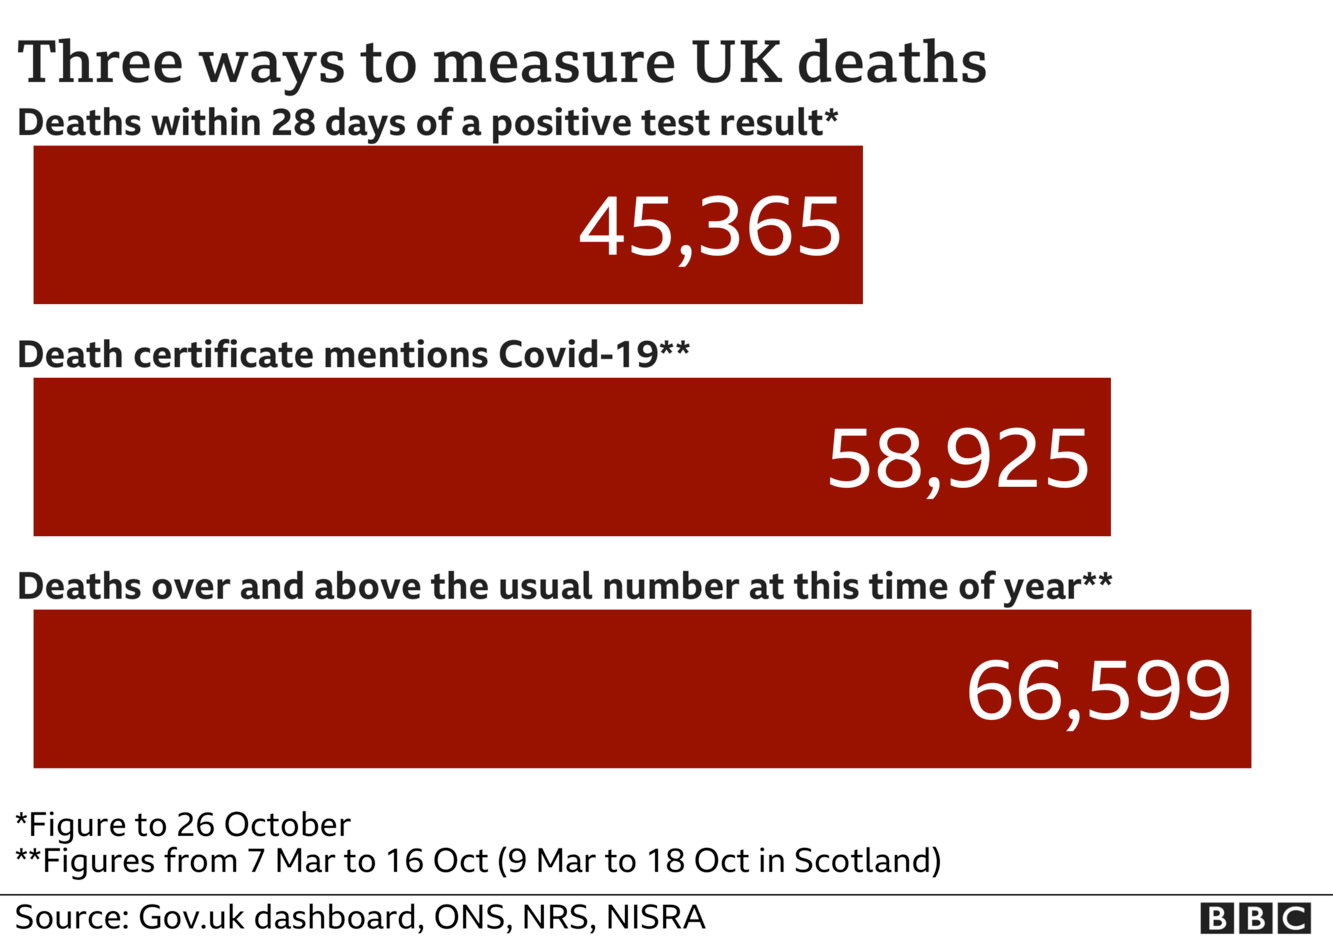 Chart shows three ways of measuring coronavirus deaths - government statistics count everyone who dies withint 28 days of a positive test, the total is now 45,365, ONS stats include everyone where coronavirus was mentioned on the death certificate and that total is now 58,925, the final total includes all excess deaths over and above the usual number and that is now 66,599, updated 27 Oct